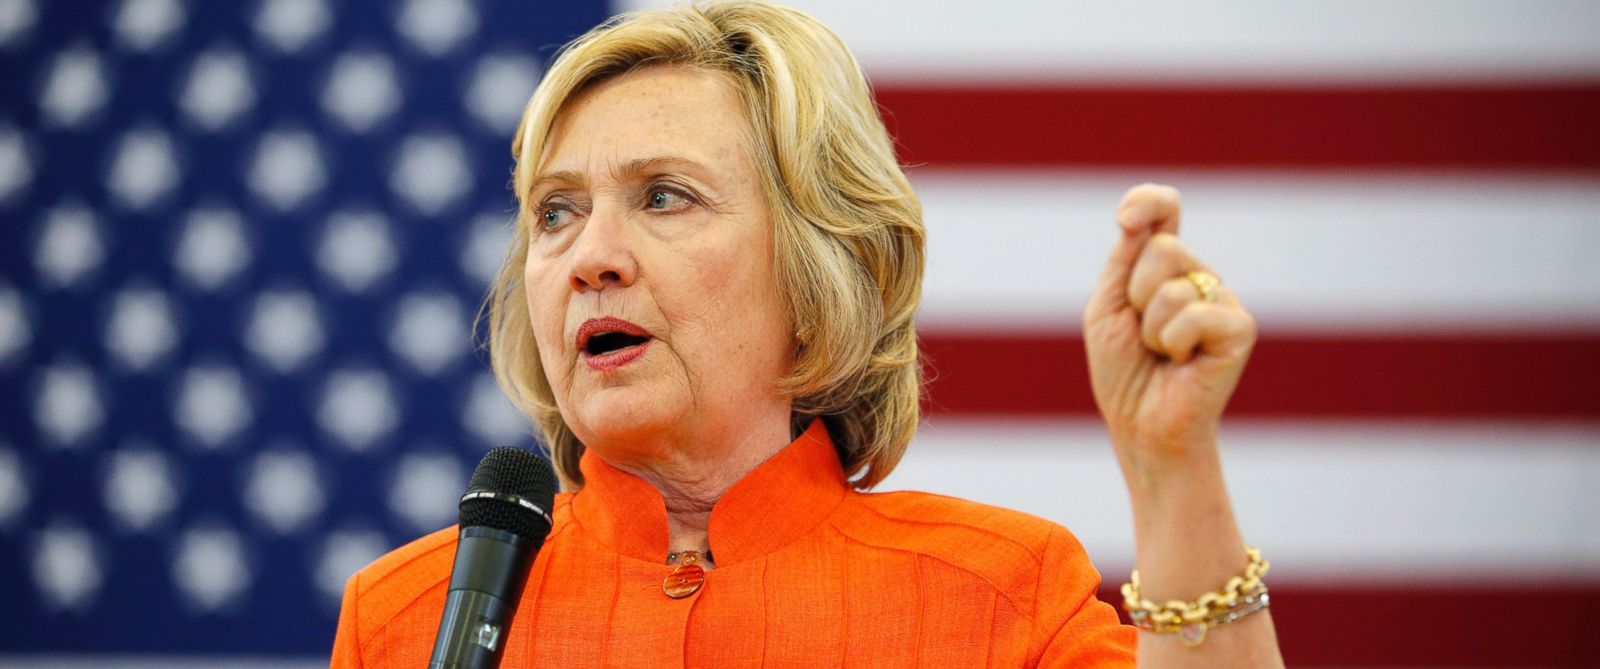 PHOTO: Democratic presidential candidate Hillary Rodham Clinton speaks at a town hall meeting, Aug. 18, 2015, in Las Vegas.